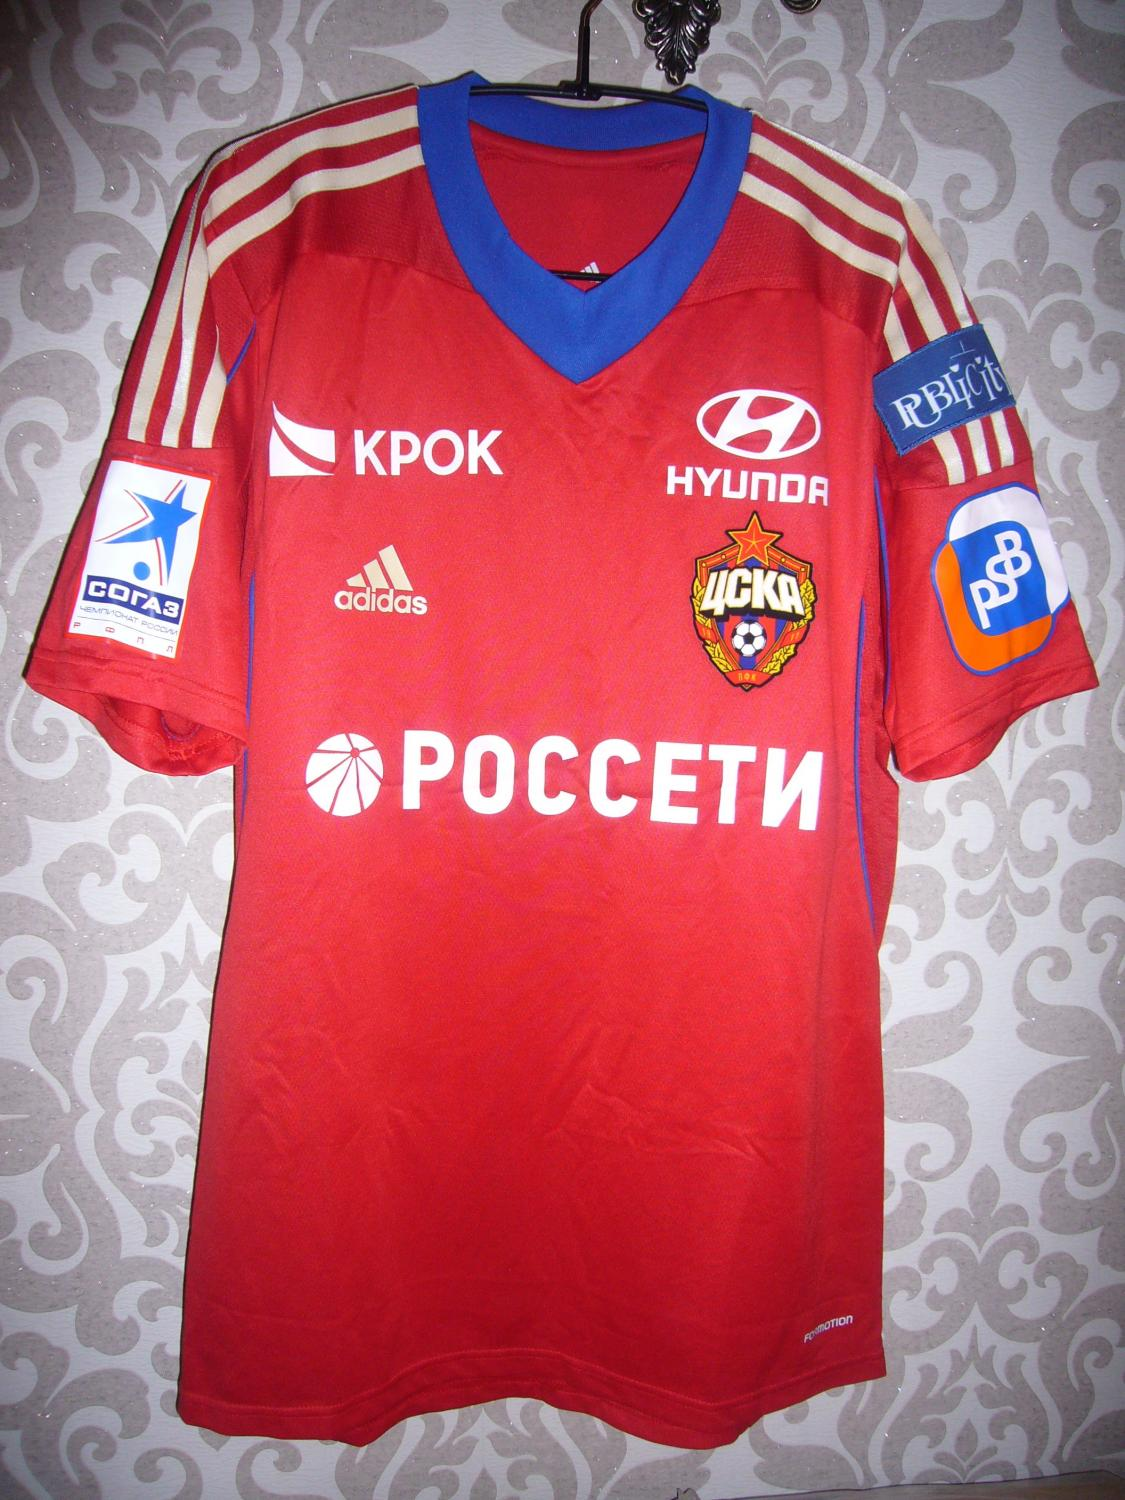 36295e4f73ecb CSKA Moscow Home camisa de futebol 2013 - 2014. Sponsored by Rosseti